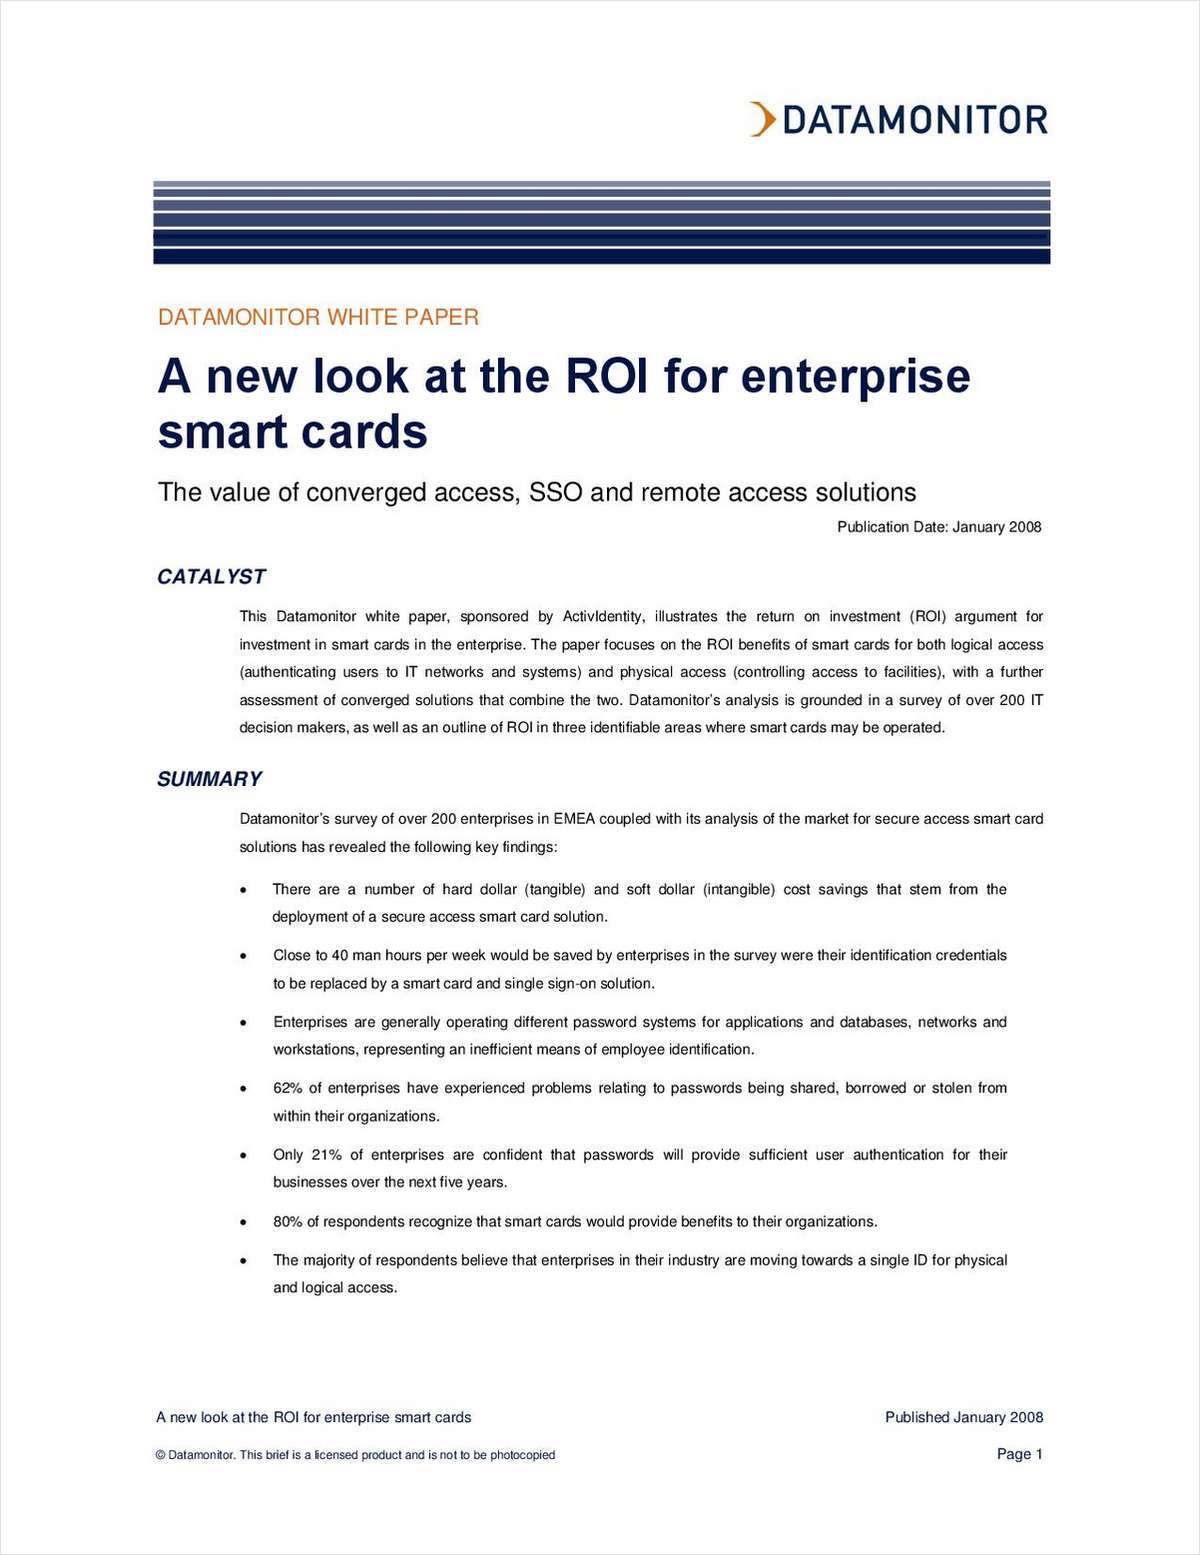 A New Look at the ROI for Enterprise Smart Cards